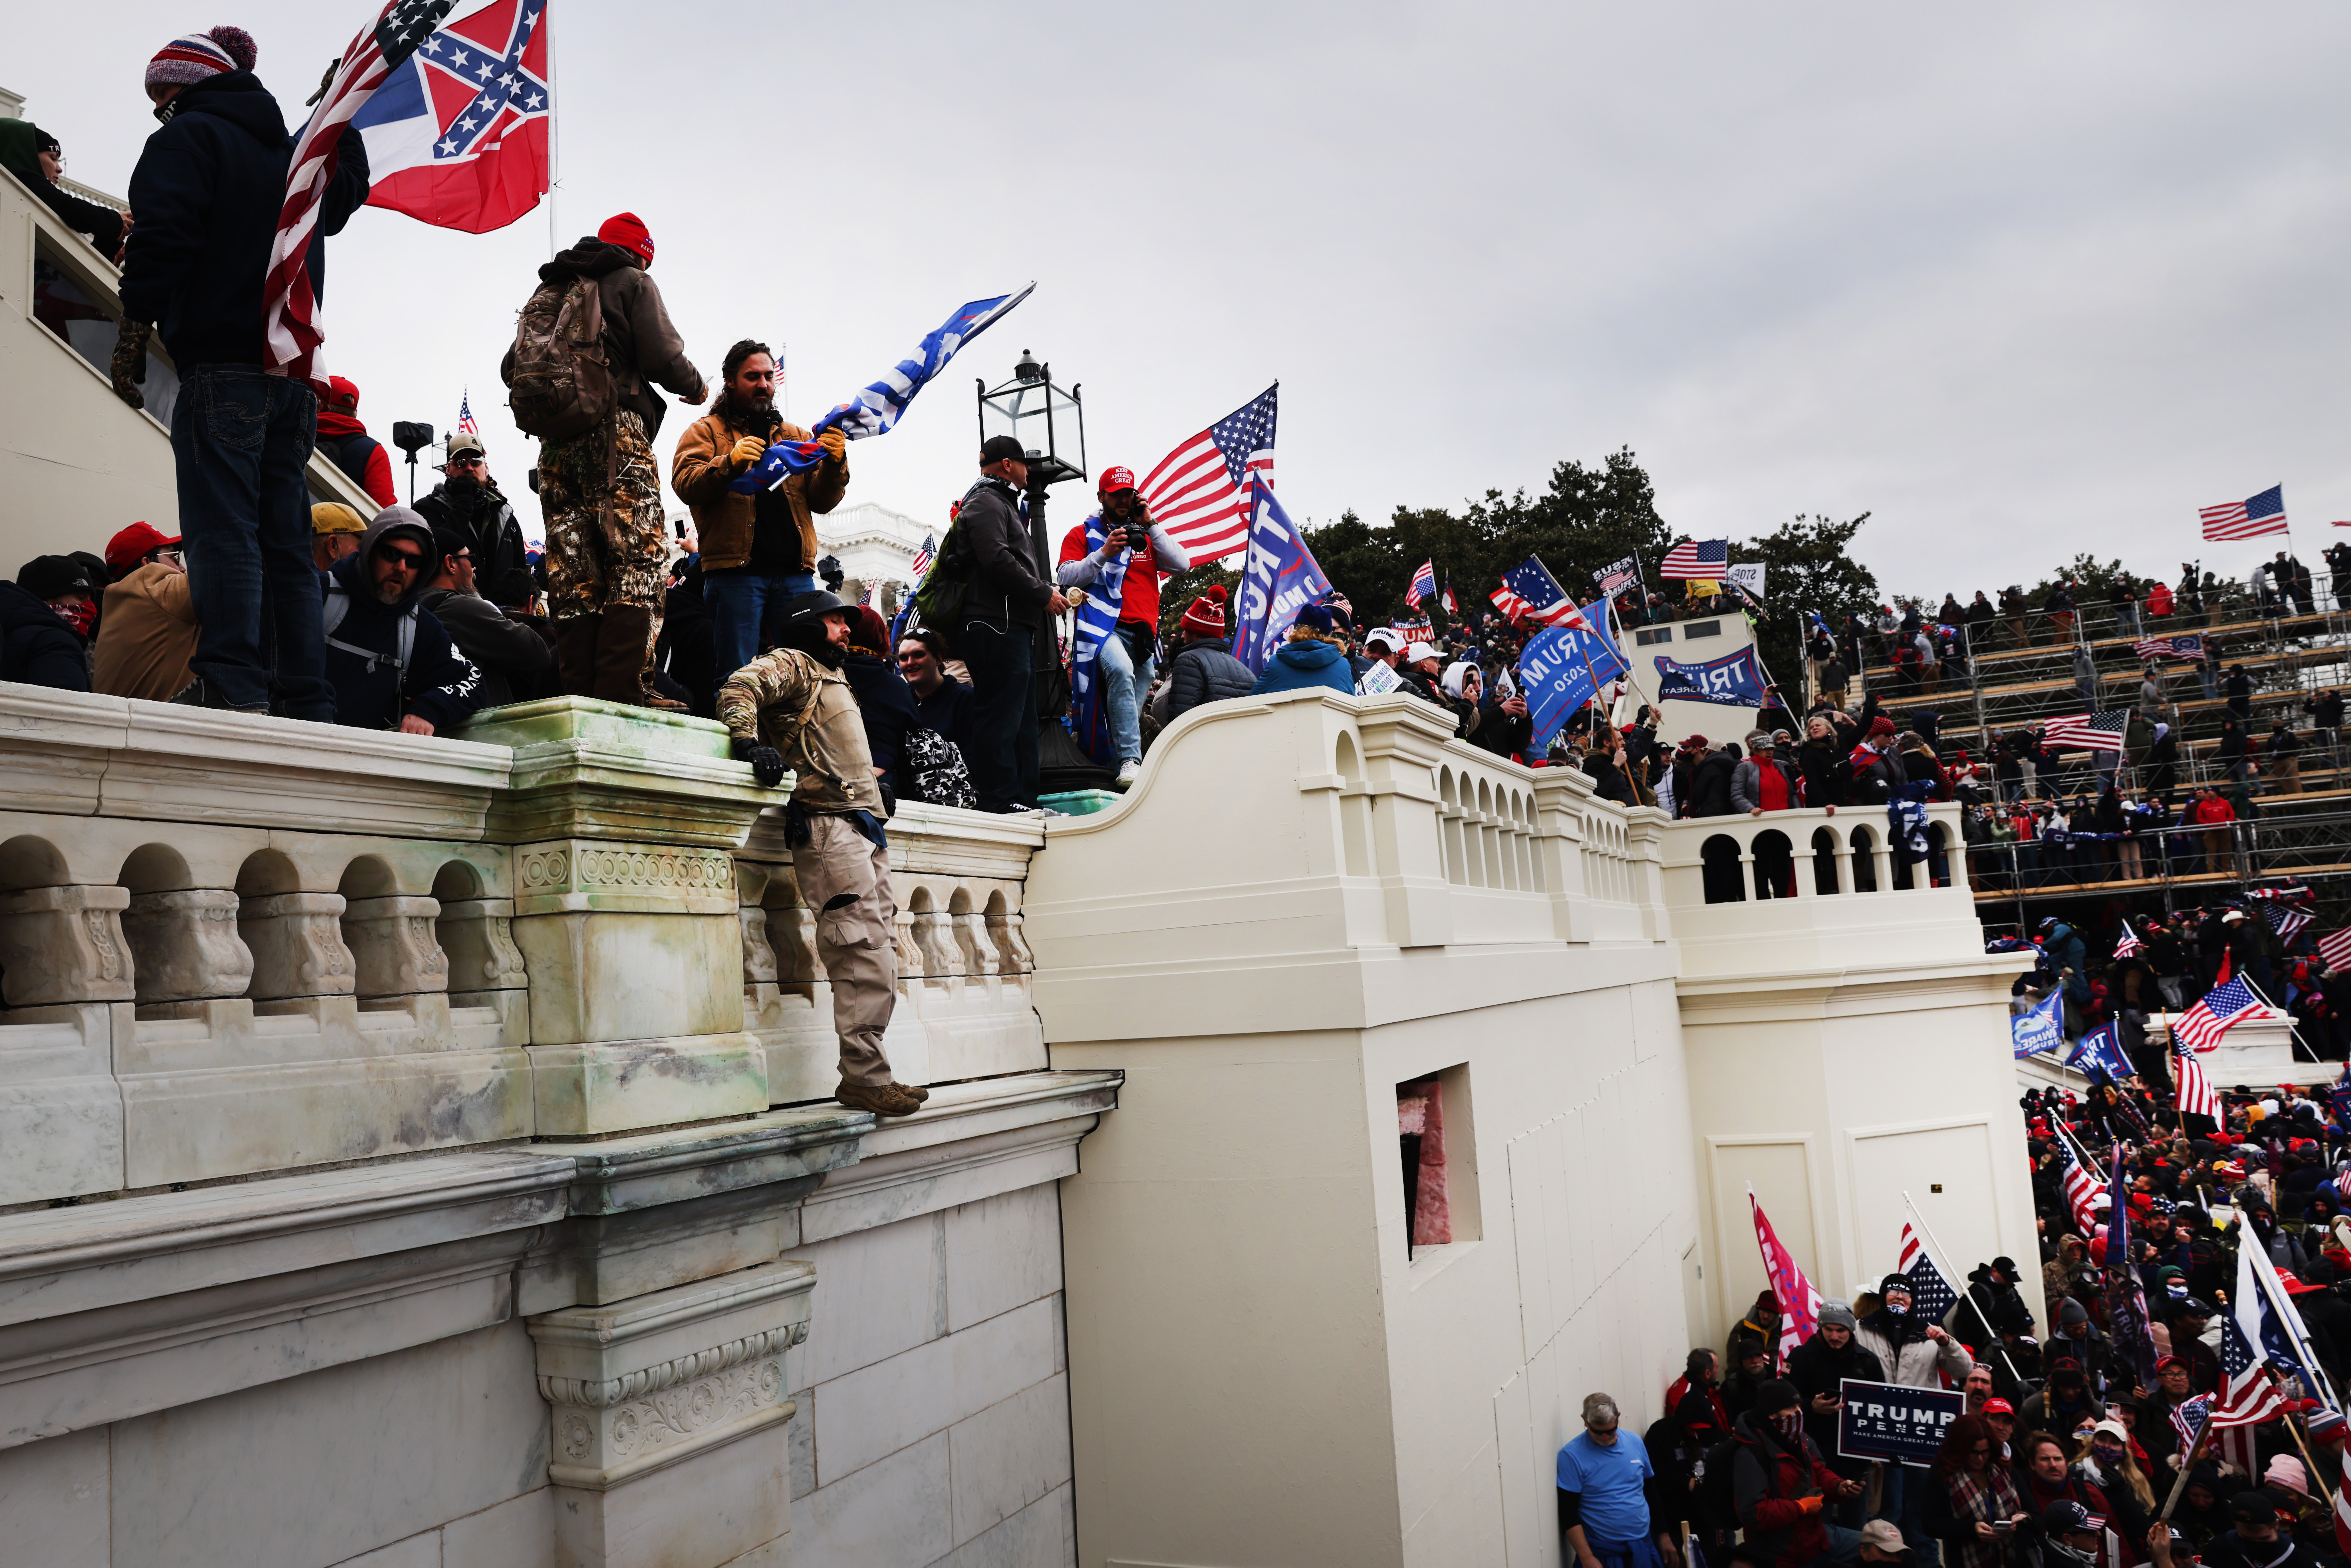 Thousands of rioters storm the U.S. Capitol building following a  Stop the Steal  rally on Jan. 06, 2021 in Washington, D.C.